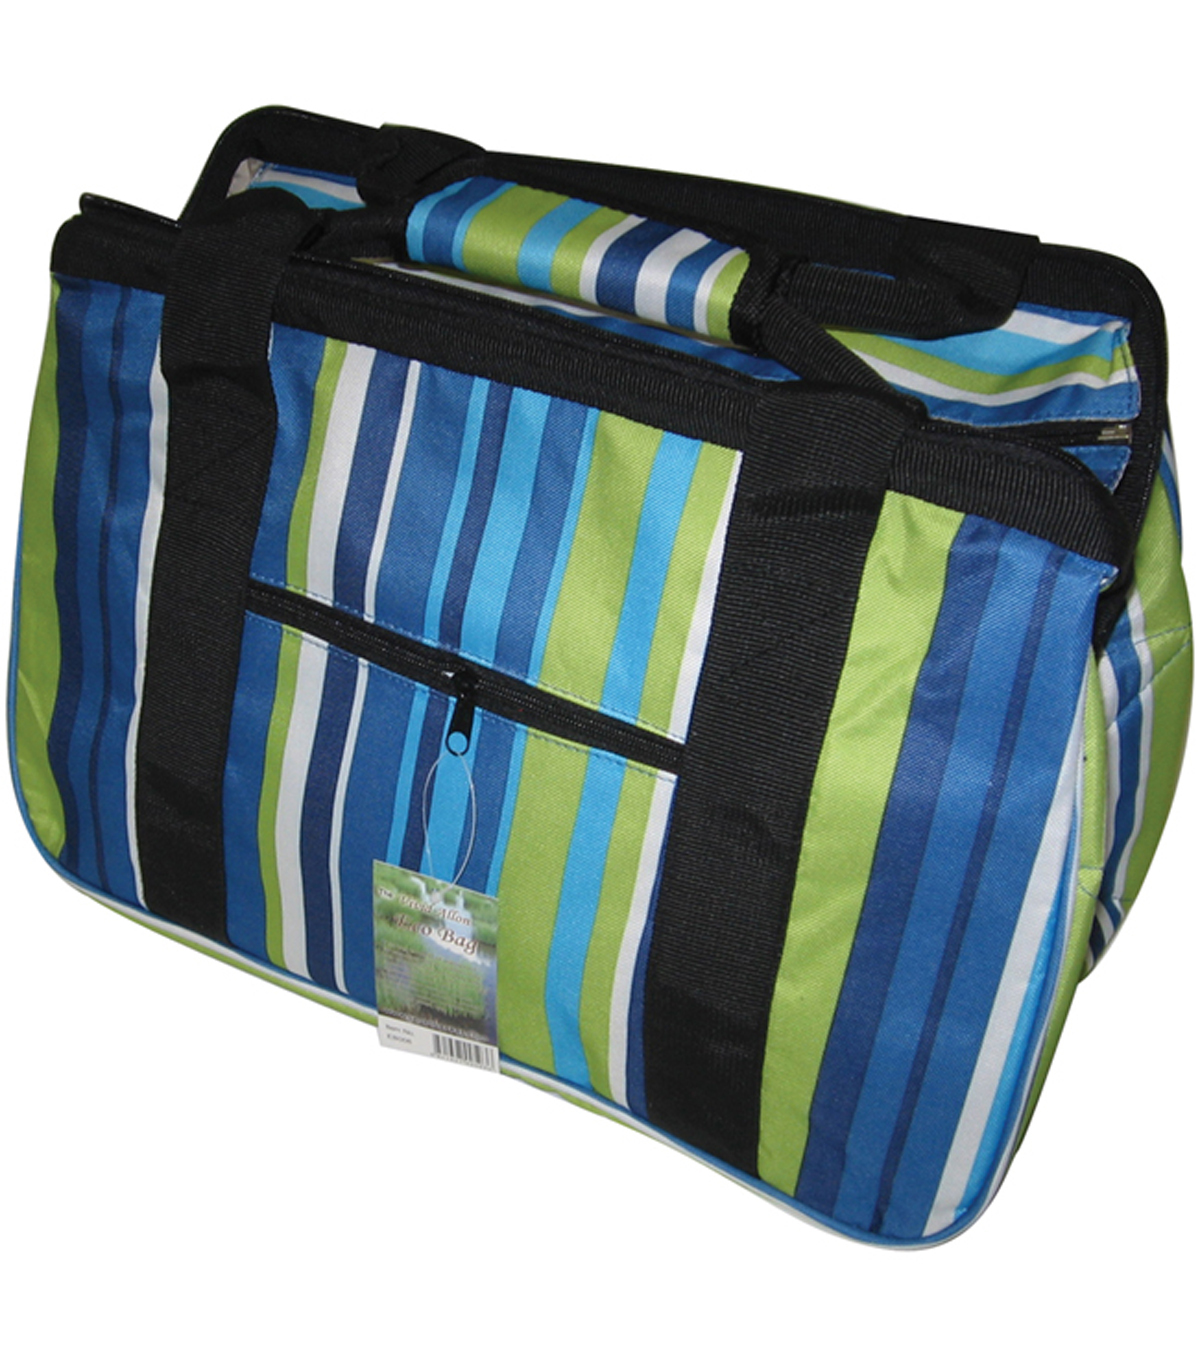 JanetBasket Blue Stripes Eco Bag-18\u0022 x 10\u0022 x 12\u0022